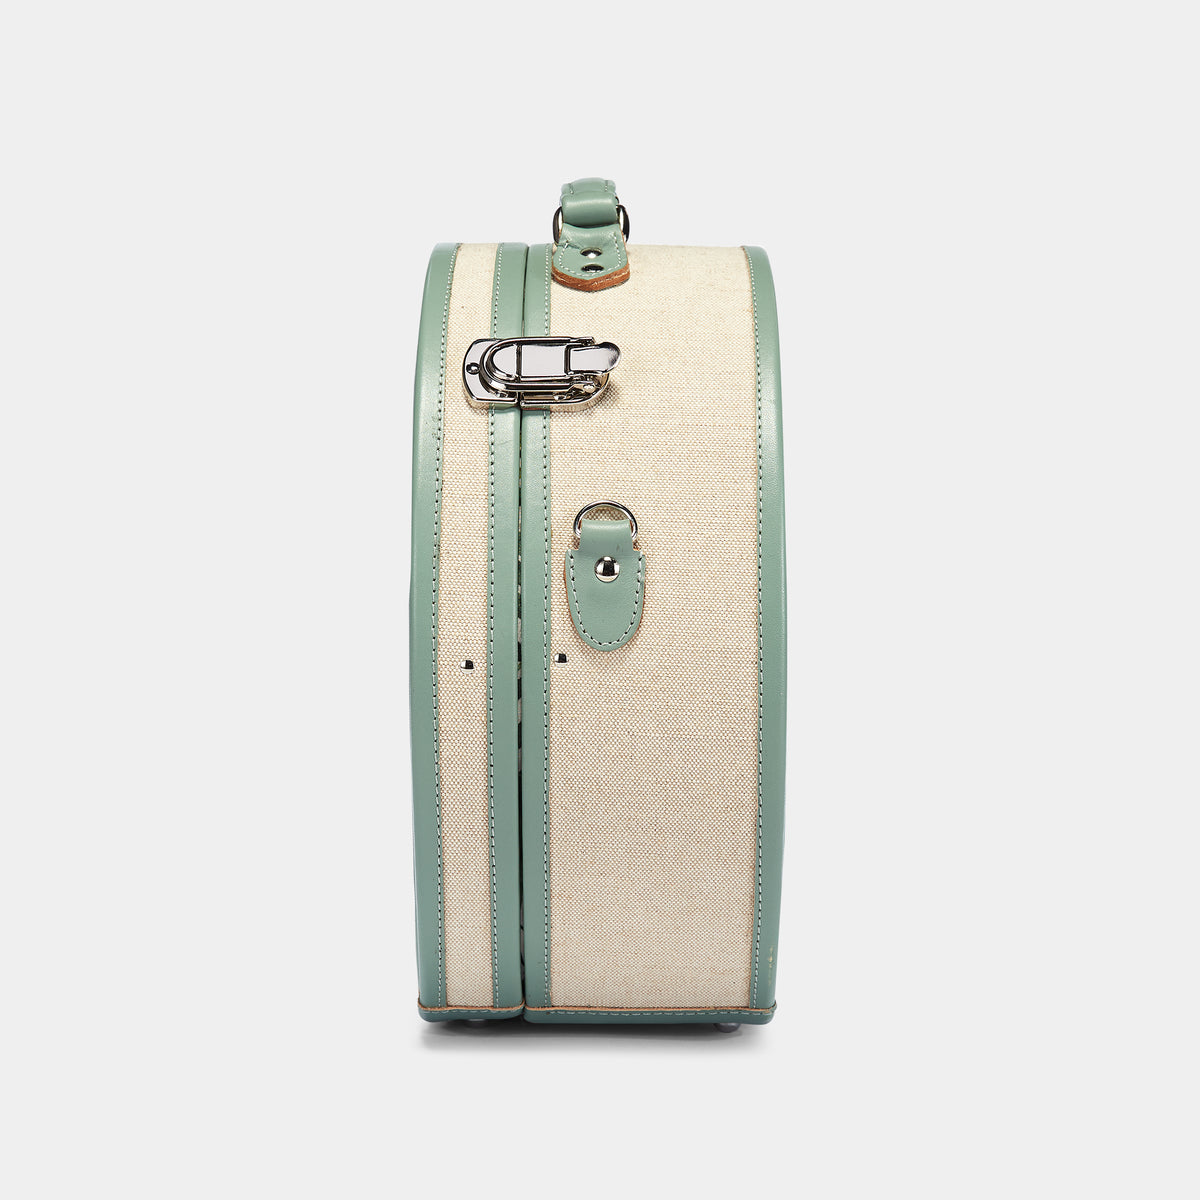 The Editor Hatbox Large in Seagreen - Hat Box Luggage - Exterior Side